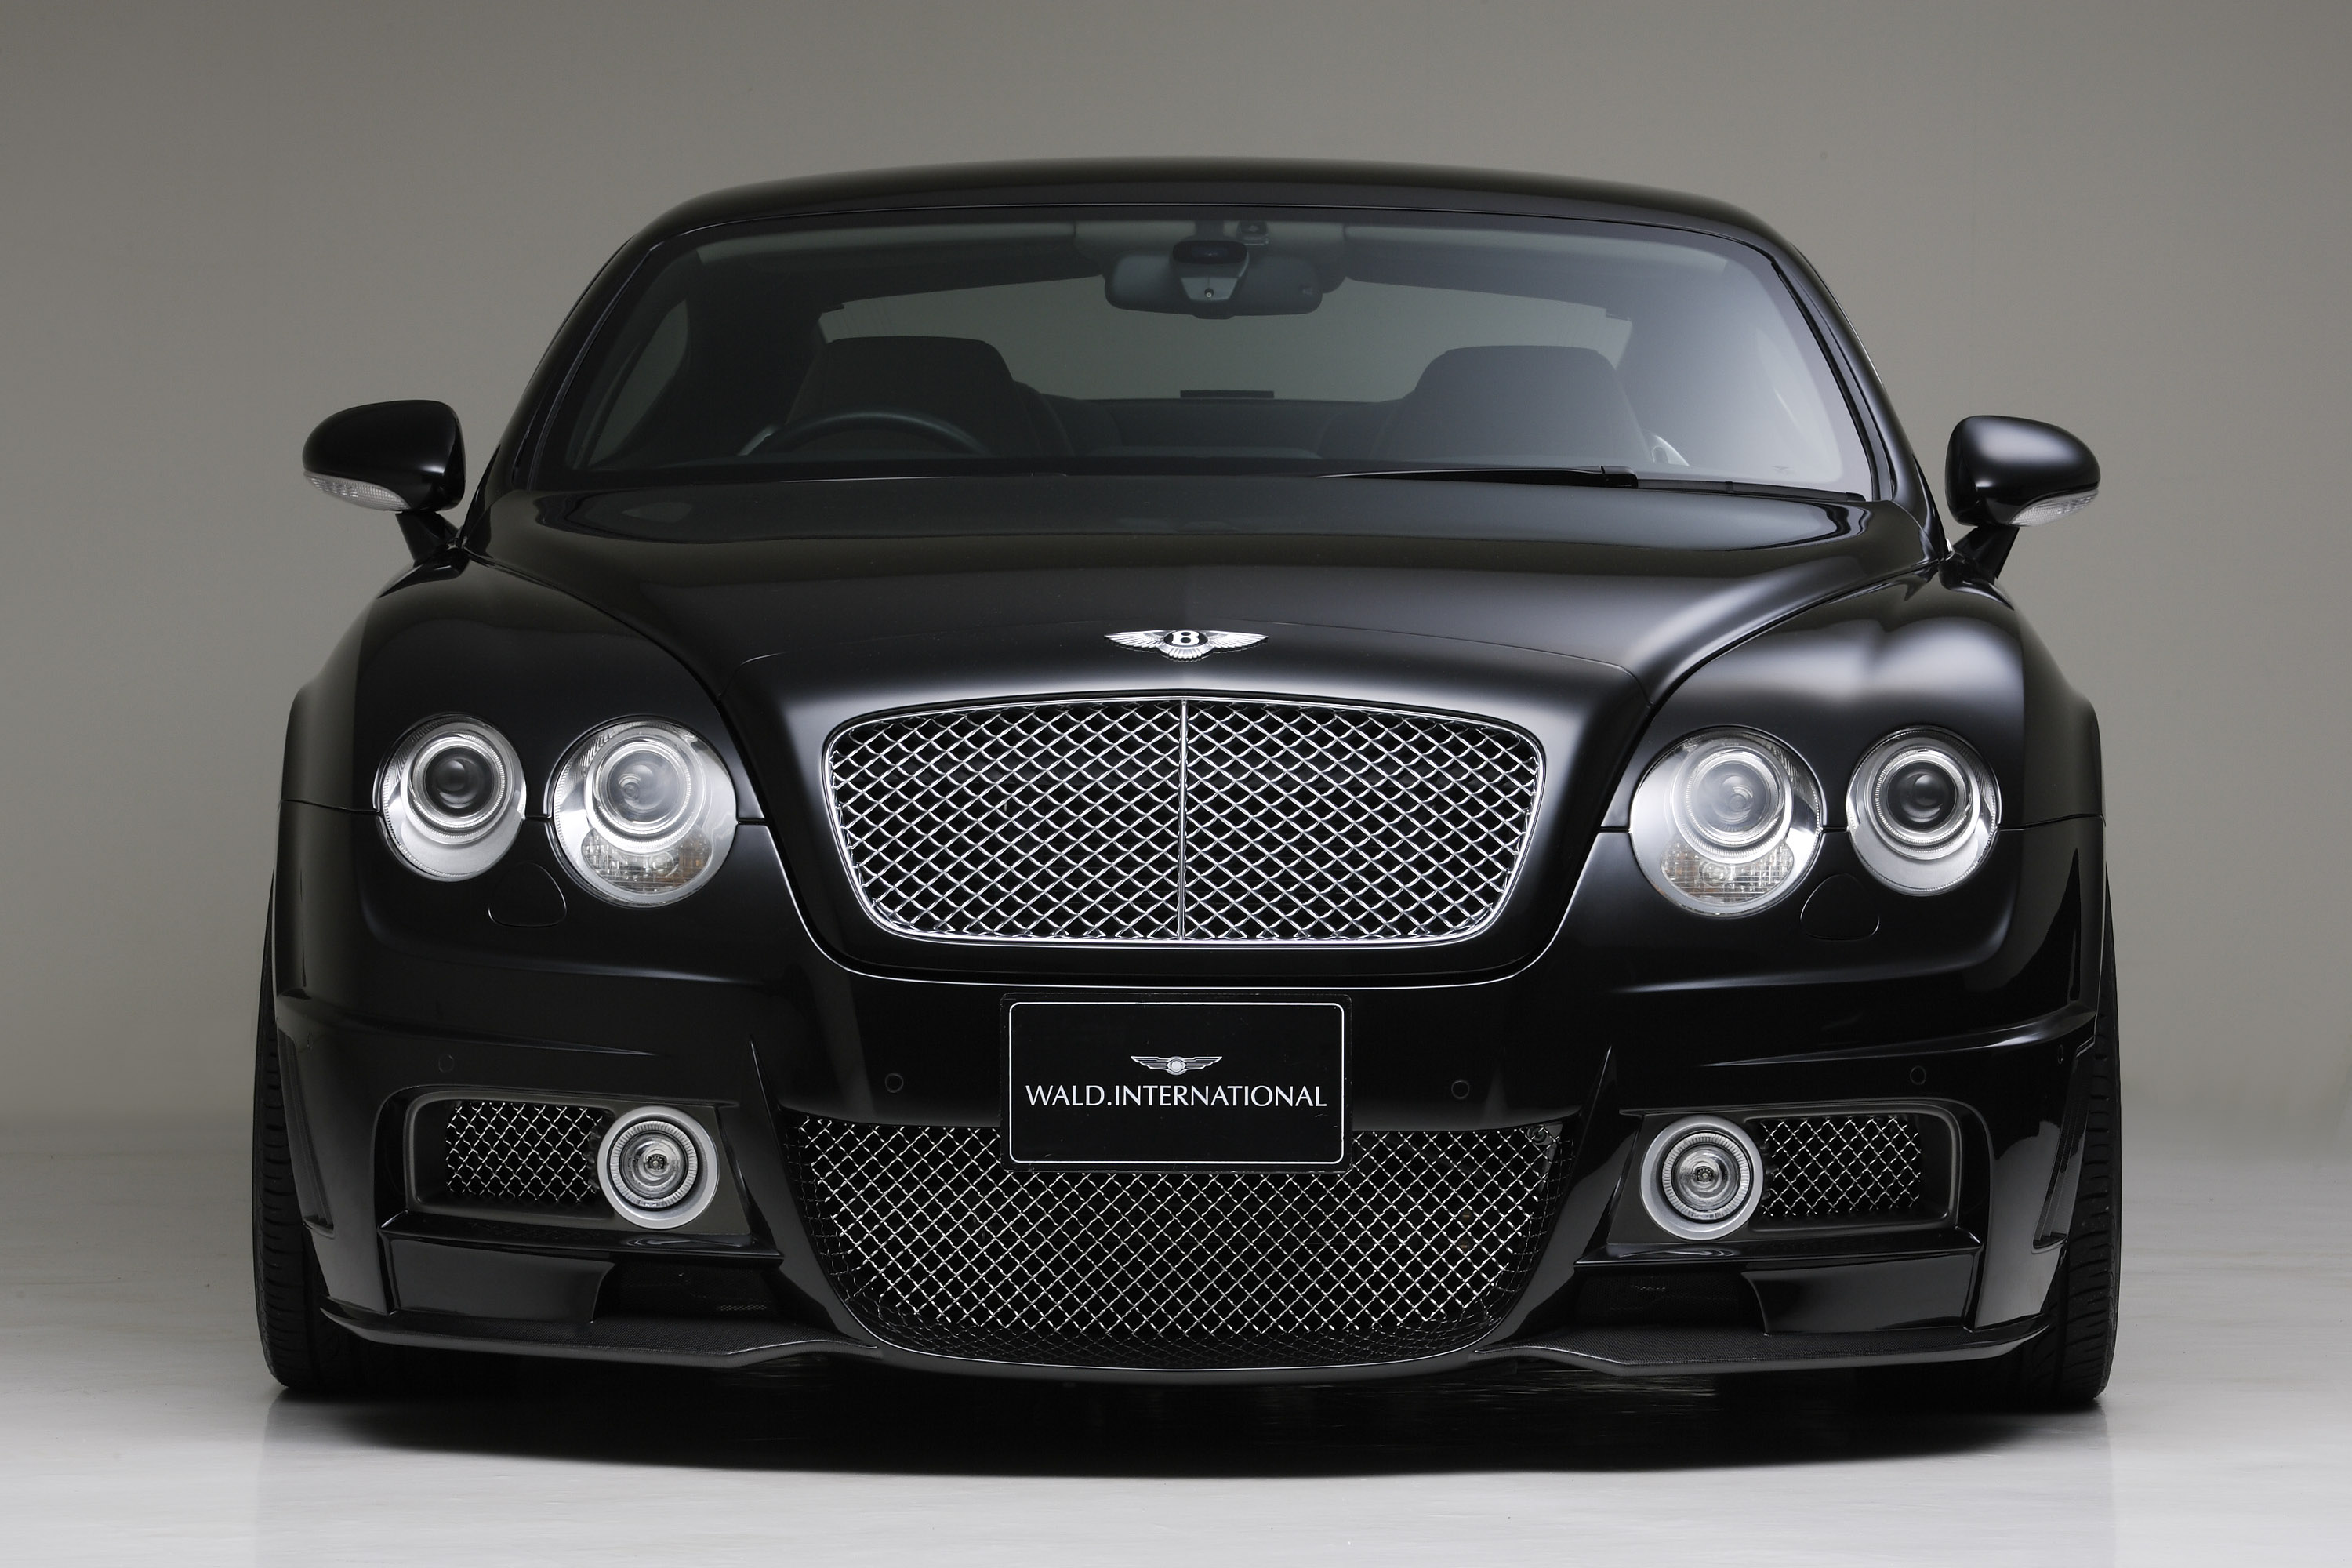 2008 wald bentley continental gt black bison images hd cars 100 reviews black bentley coupe on margojoyo index of imgwaldbentleycontinentalgtsportslineblackbison index of vanachro Images